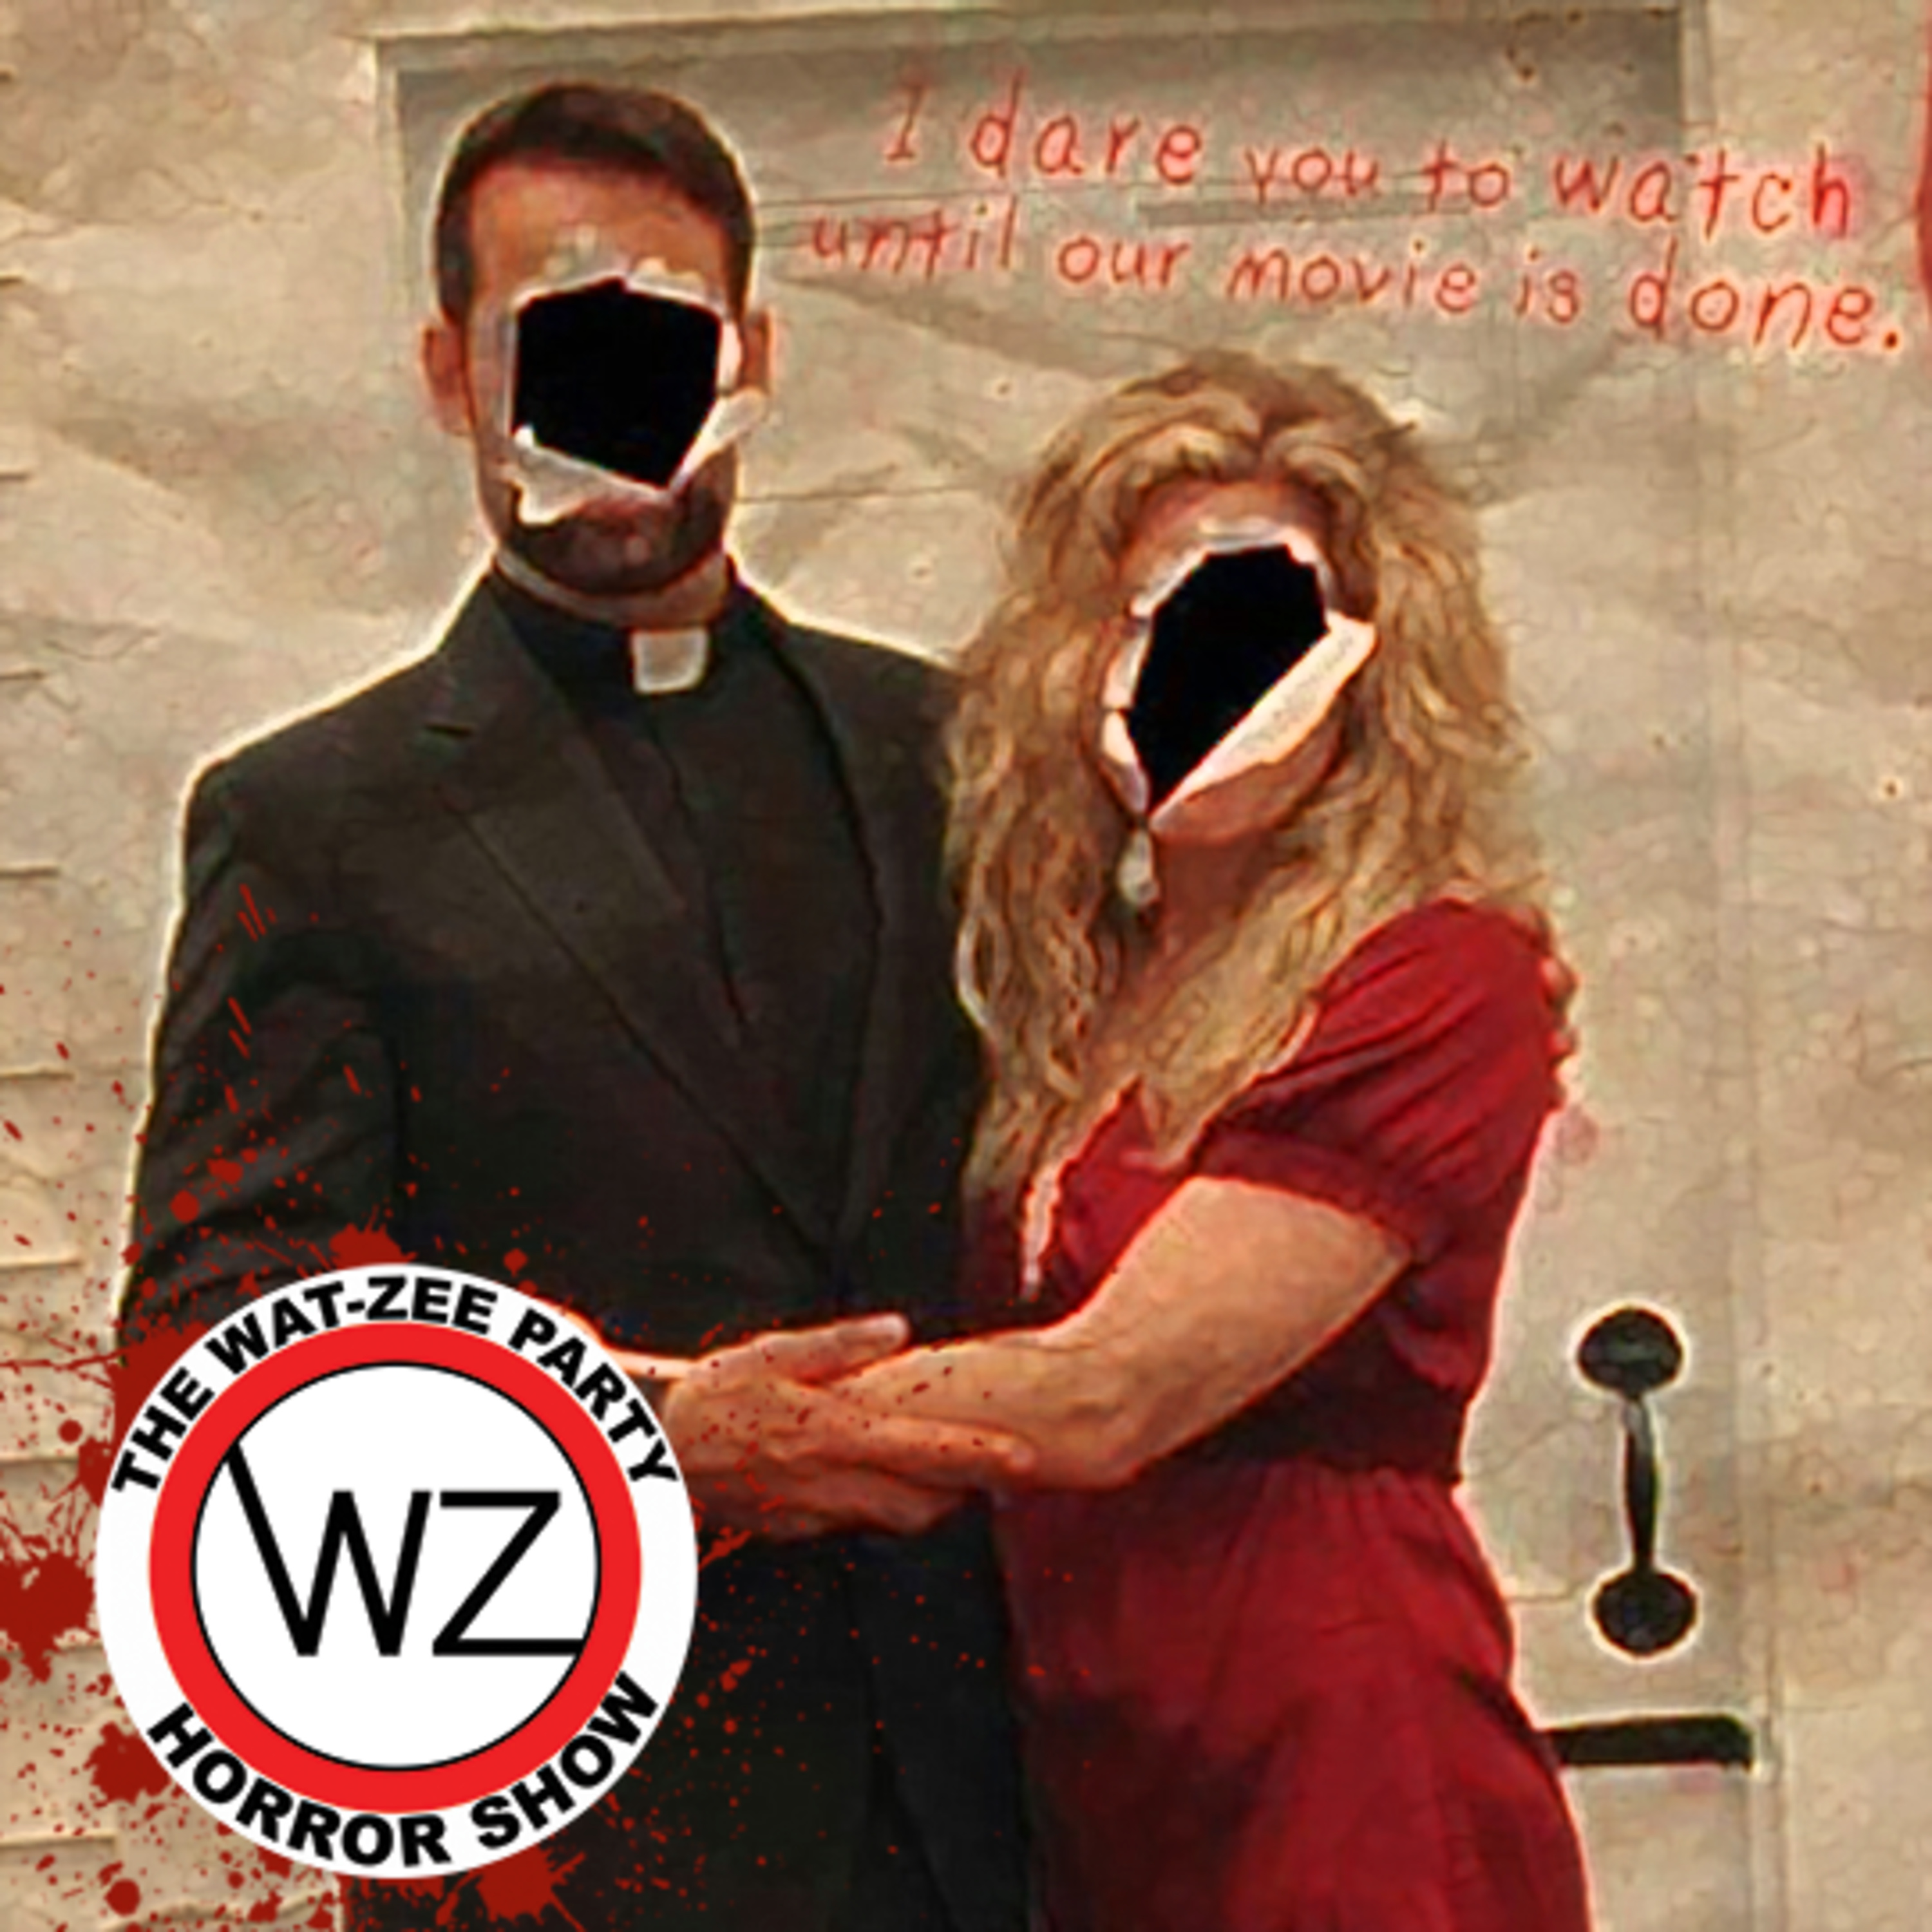 THE WAT-ZEE PARTY HORROR SHOW 011: Home Movie (2008)